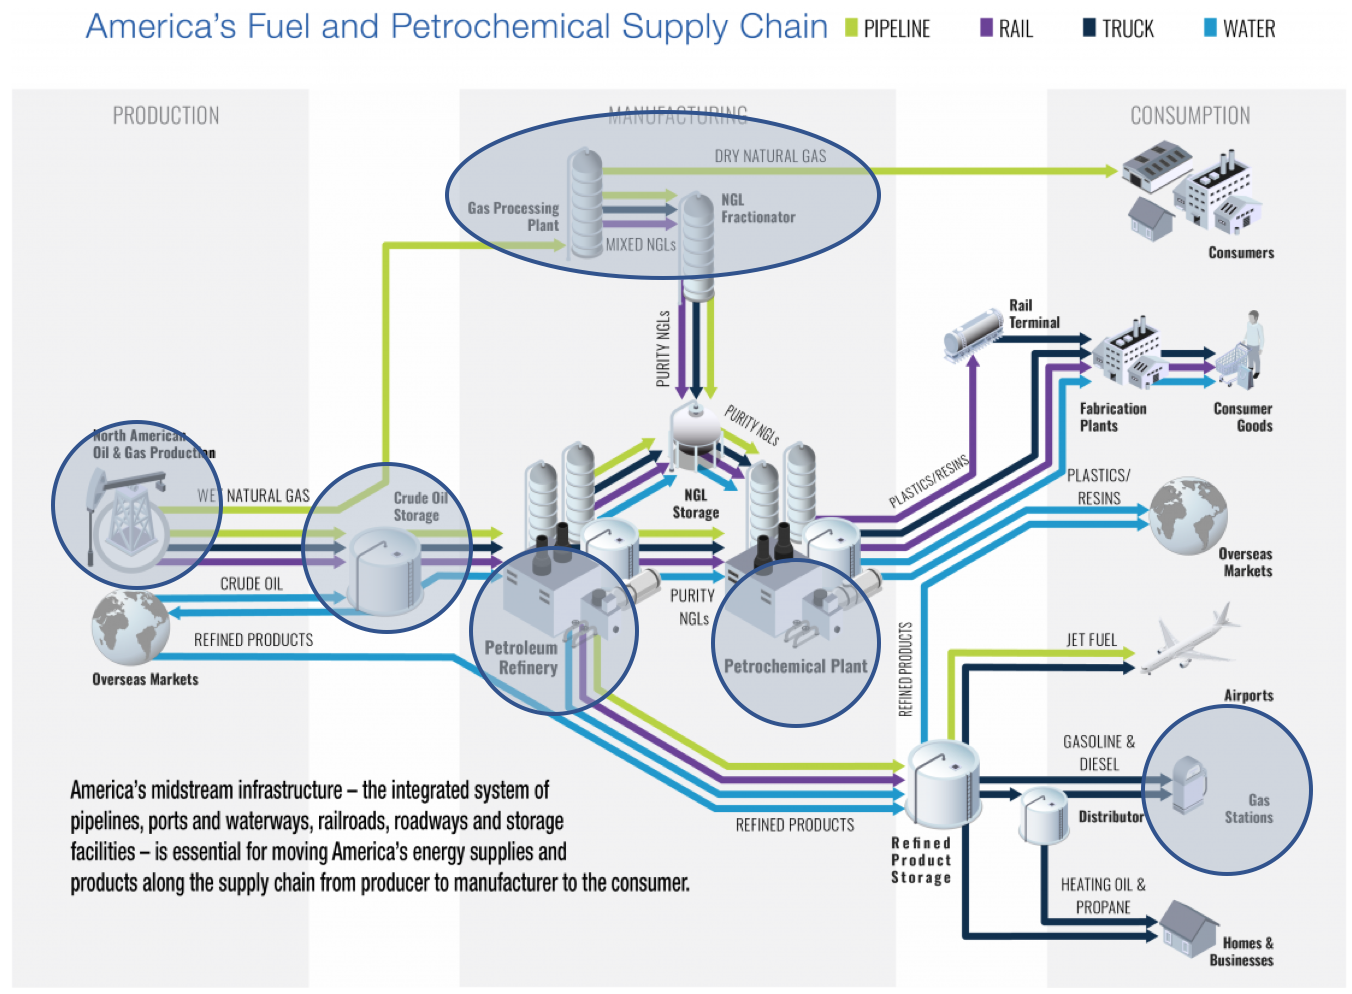 America's fuel and petrochemical supply chain